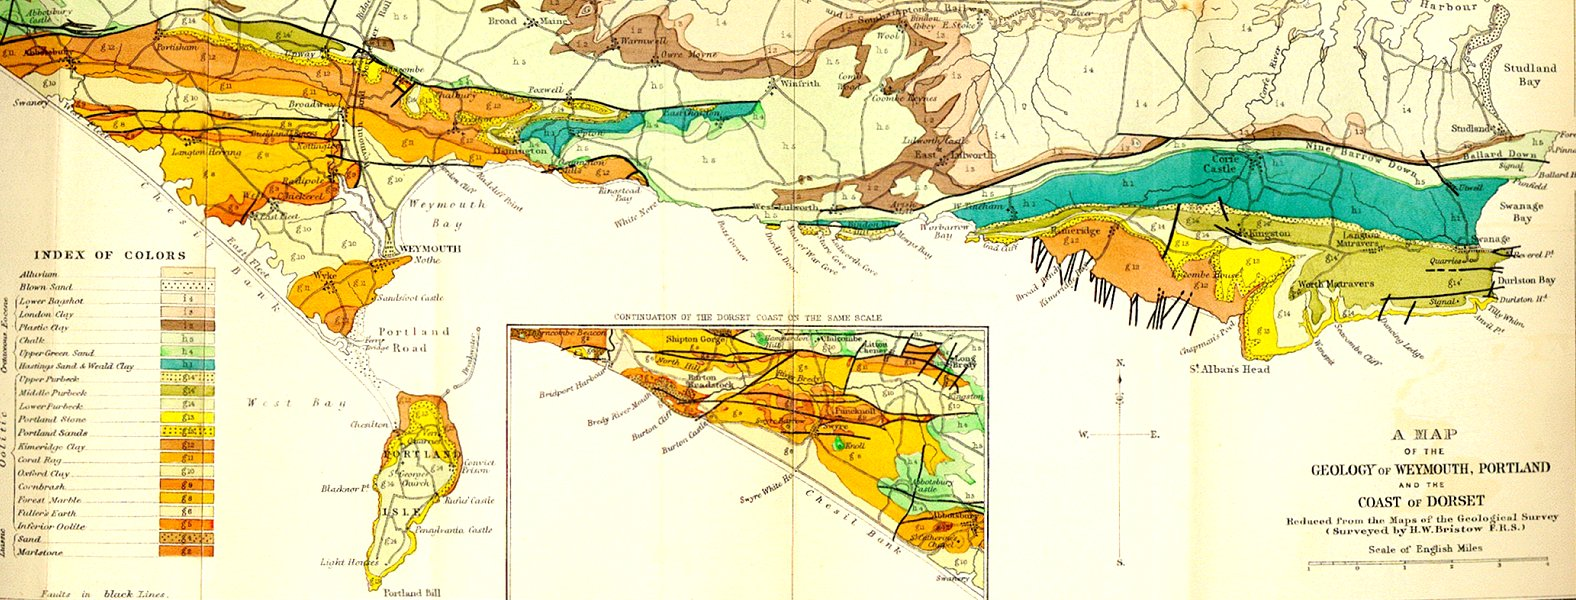 Map Of South England Uk.Geology Of The Central South Coast Of England Introduction And Maps